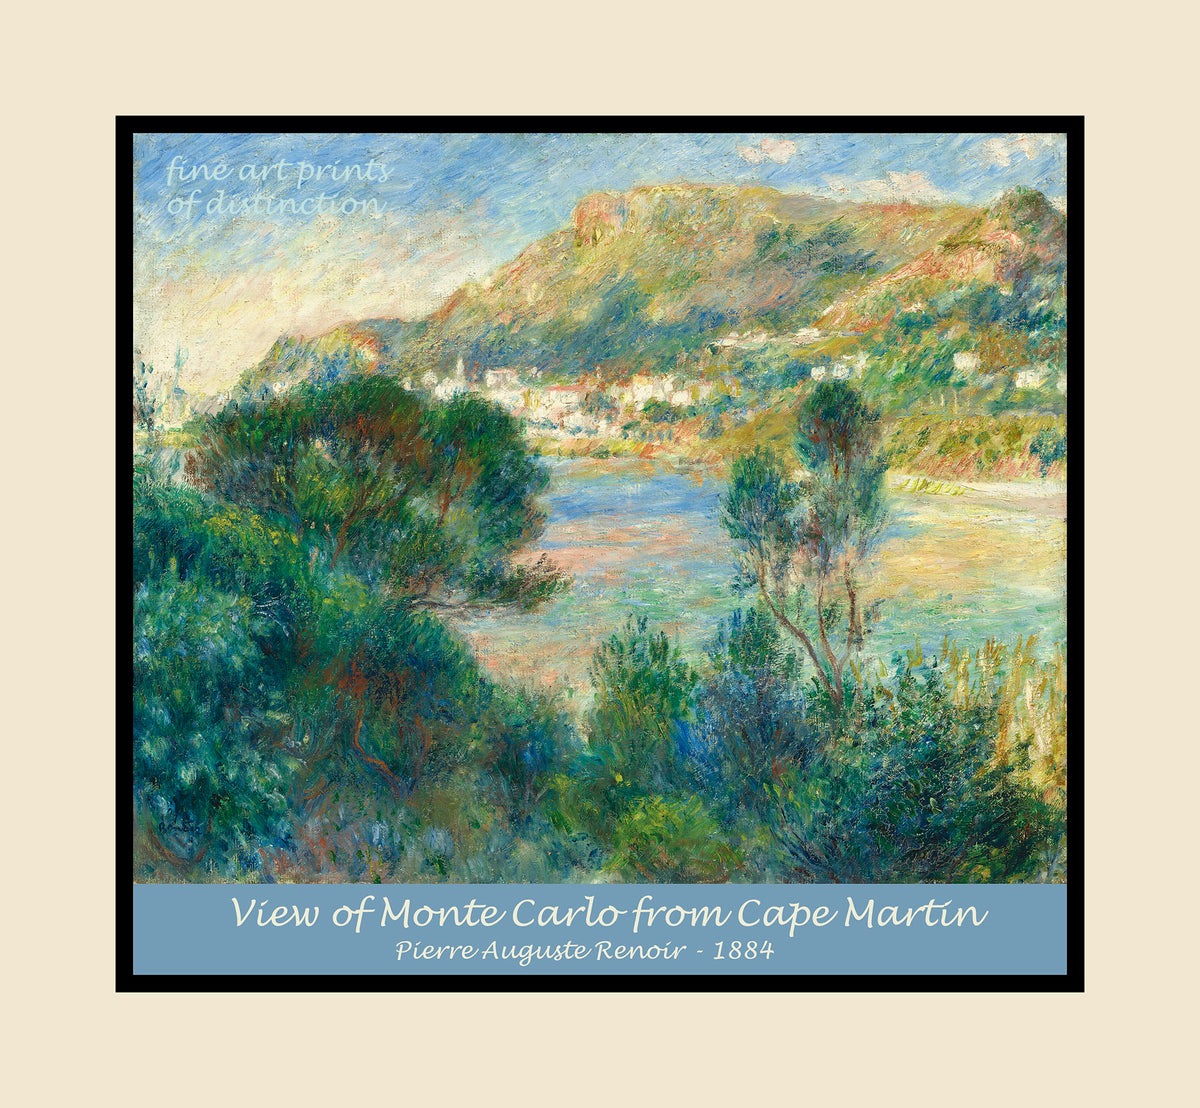 View of Monte Carlo from Cape Martin painted by Pierre Auguste Renoir premium poster